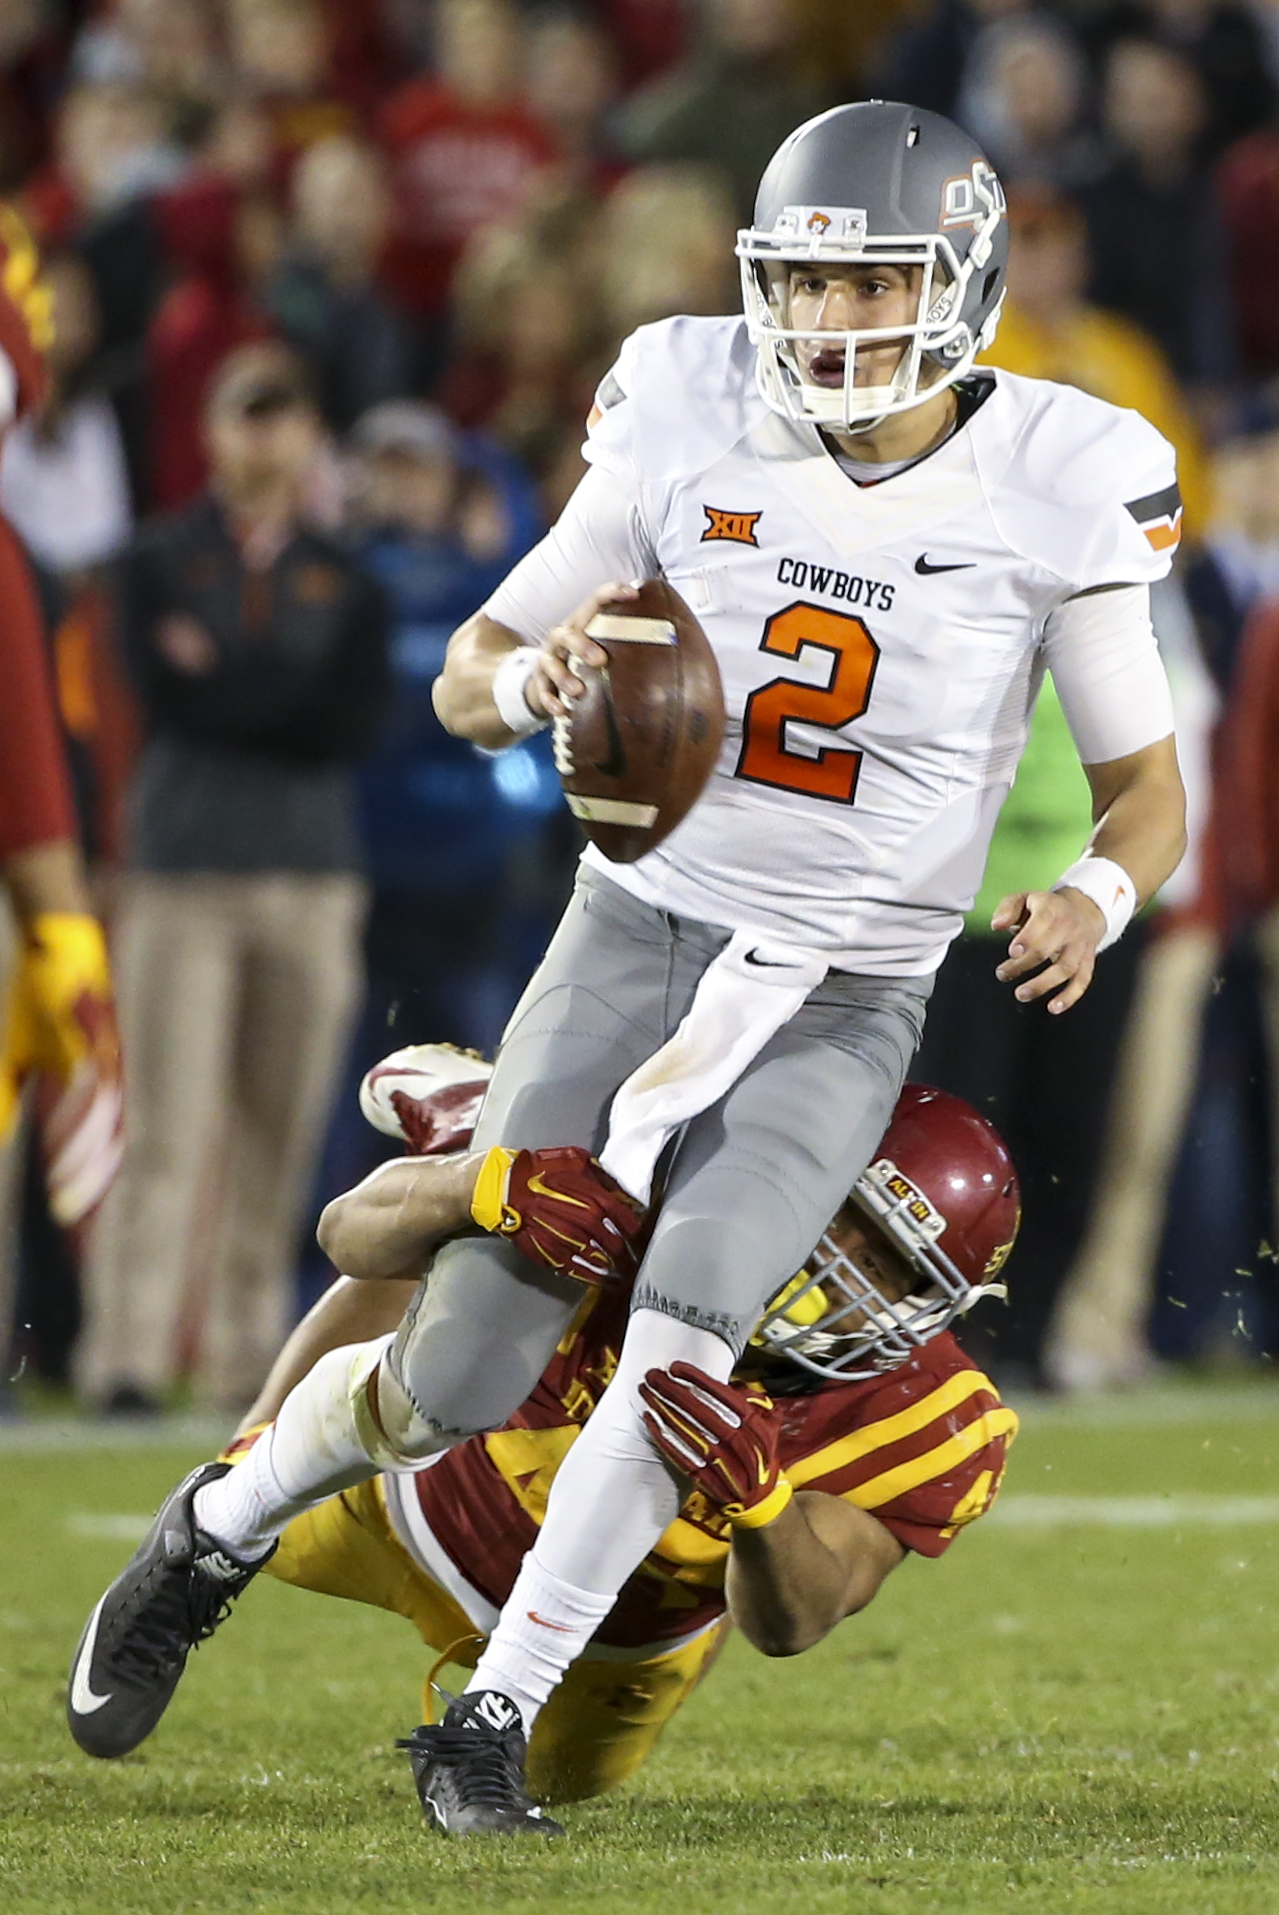 Iowa State defensive end Dale Pierson tackles Oklahoma State quarterback Mason Rudolph during the second half of an NCAA college football game, Saturday, Nov. 14, 2015, in Ames, Iowa. Oklahoma State won 35-31. (AP Photo/Justin Hayworth)